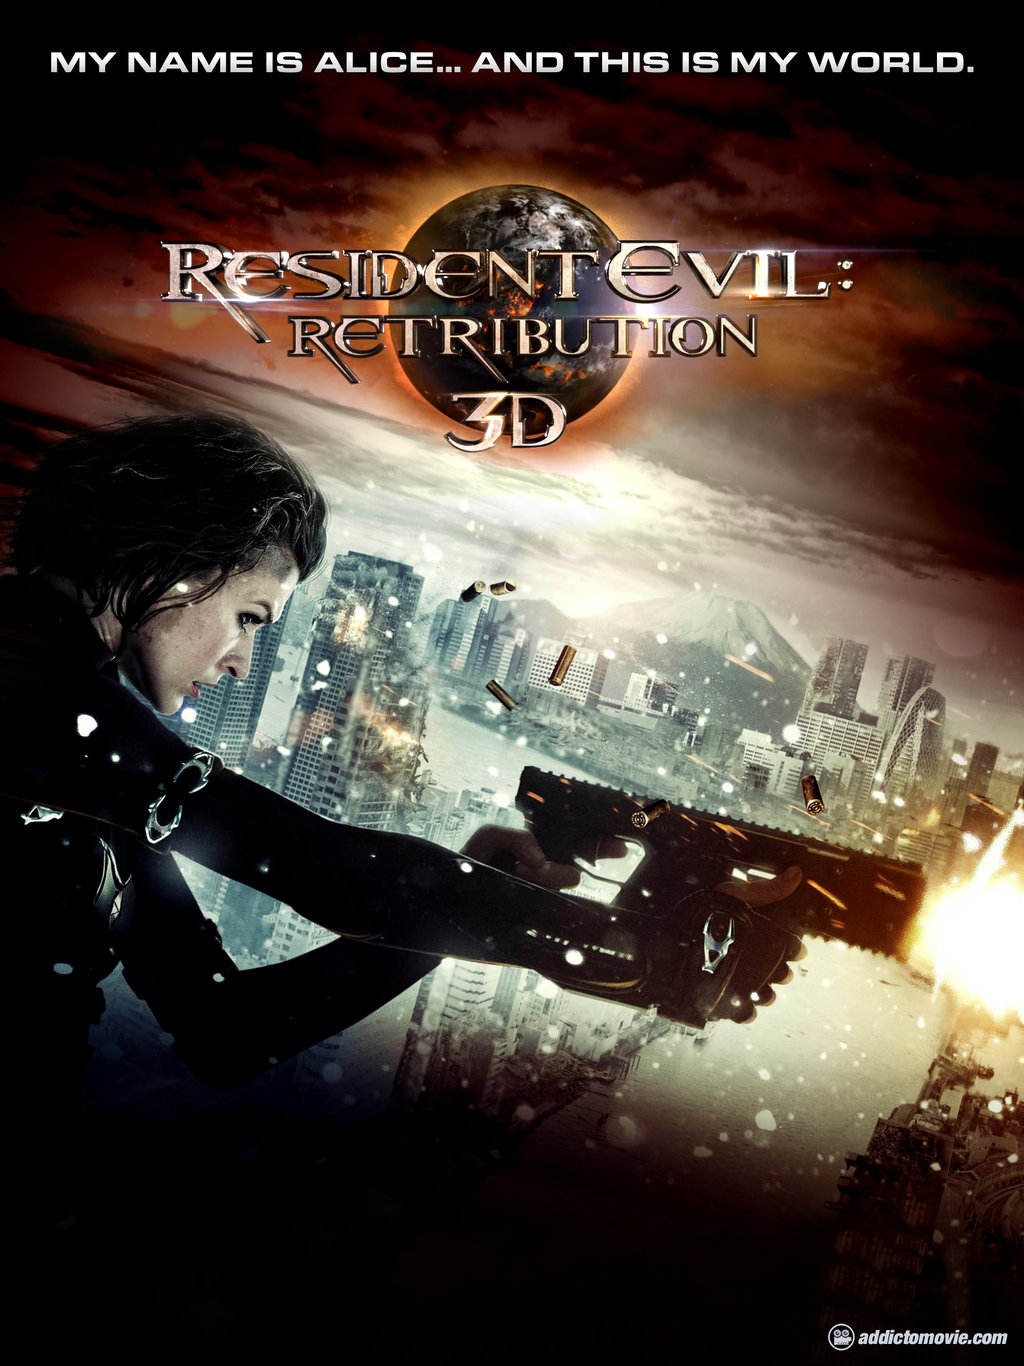 Resident Evil: Retribution - Movie Poster #1 (Original)